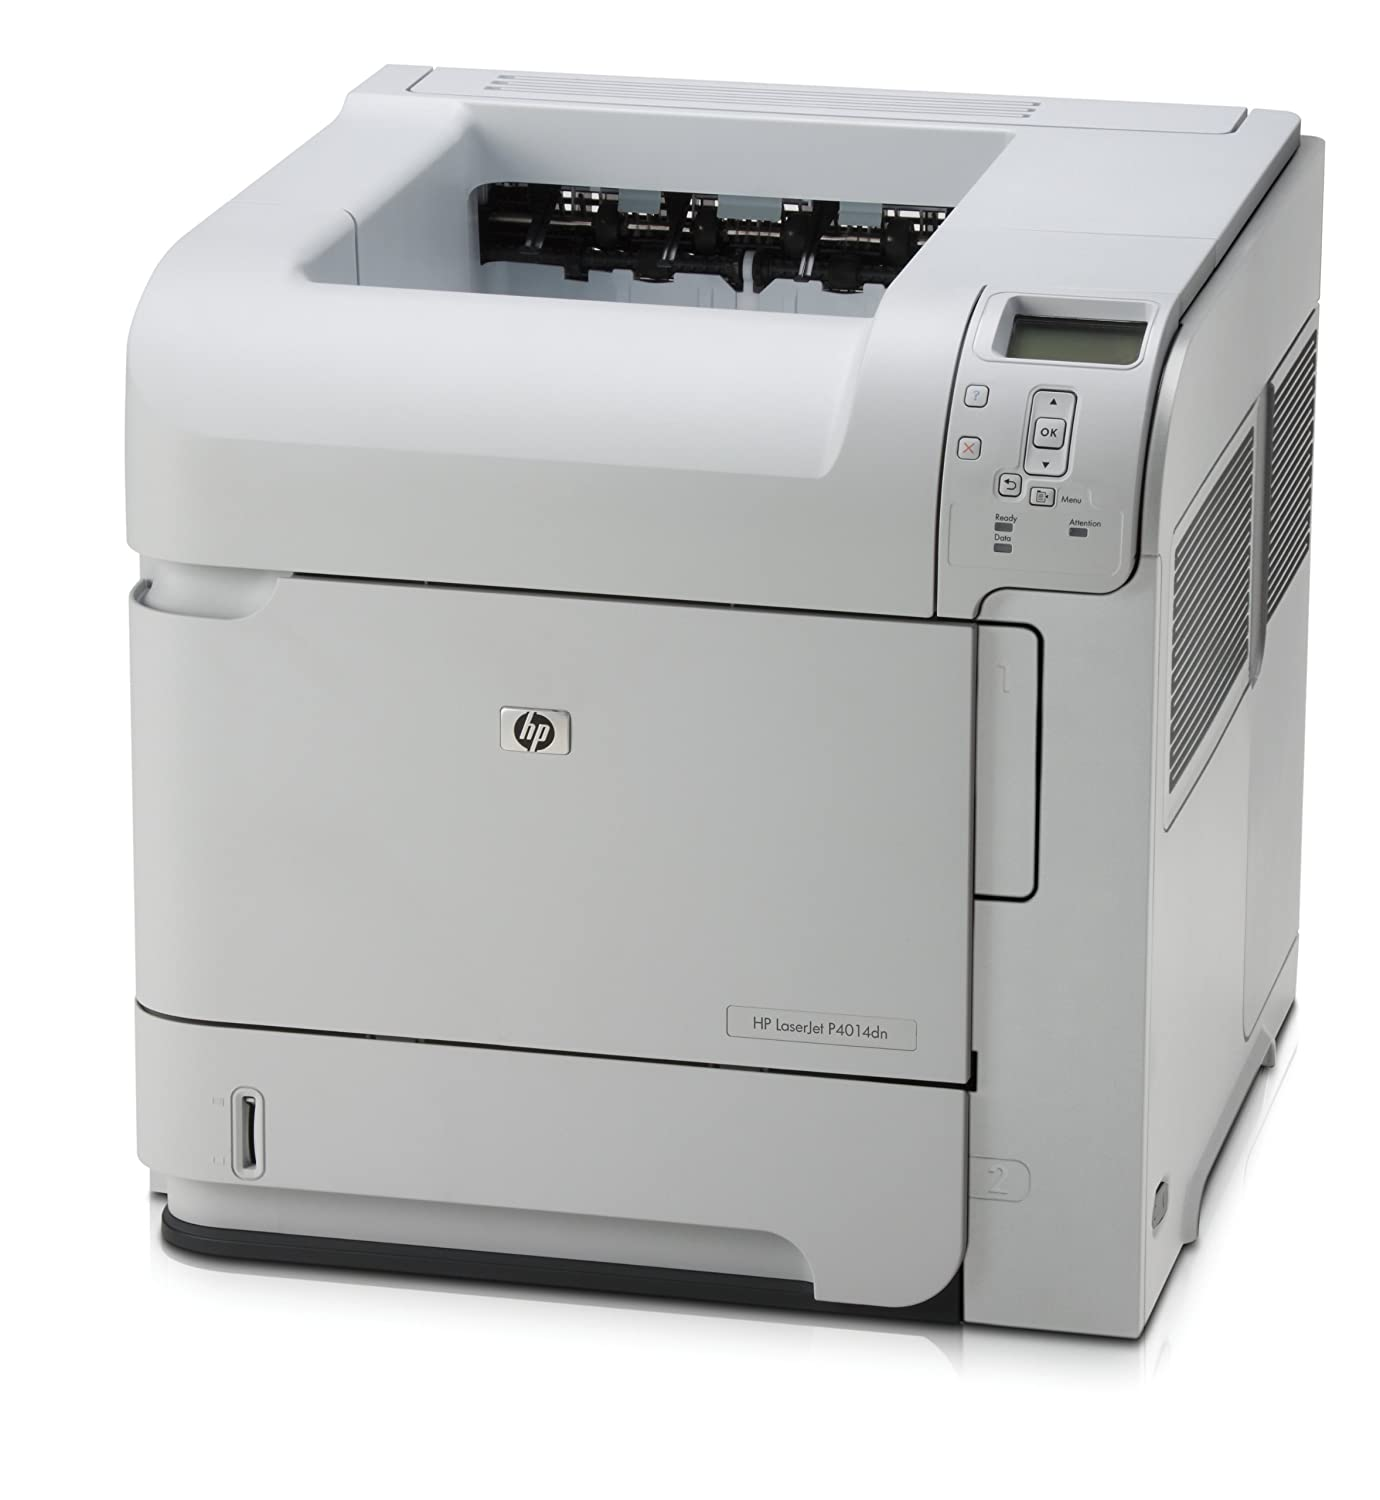 Amazon.com: HP LaserJet P4014dn Printer (CB512A): Electronics